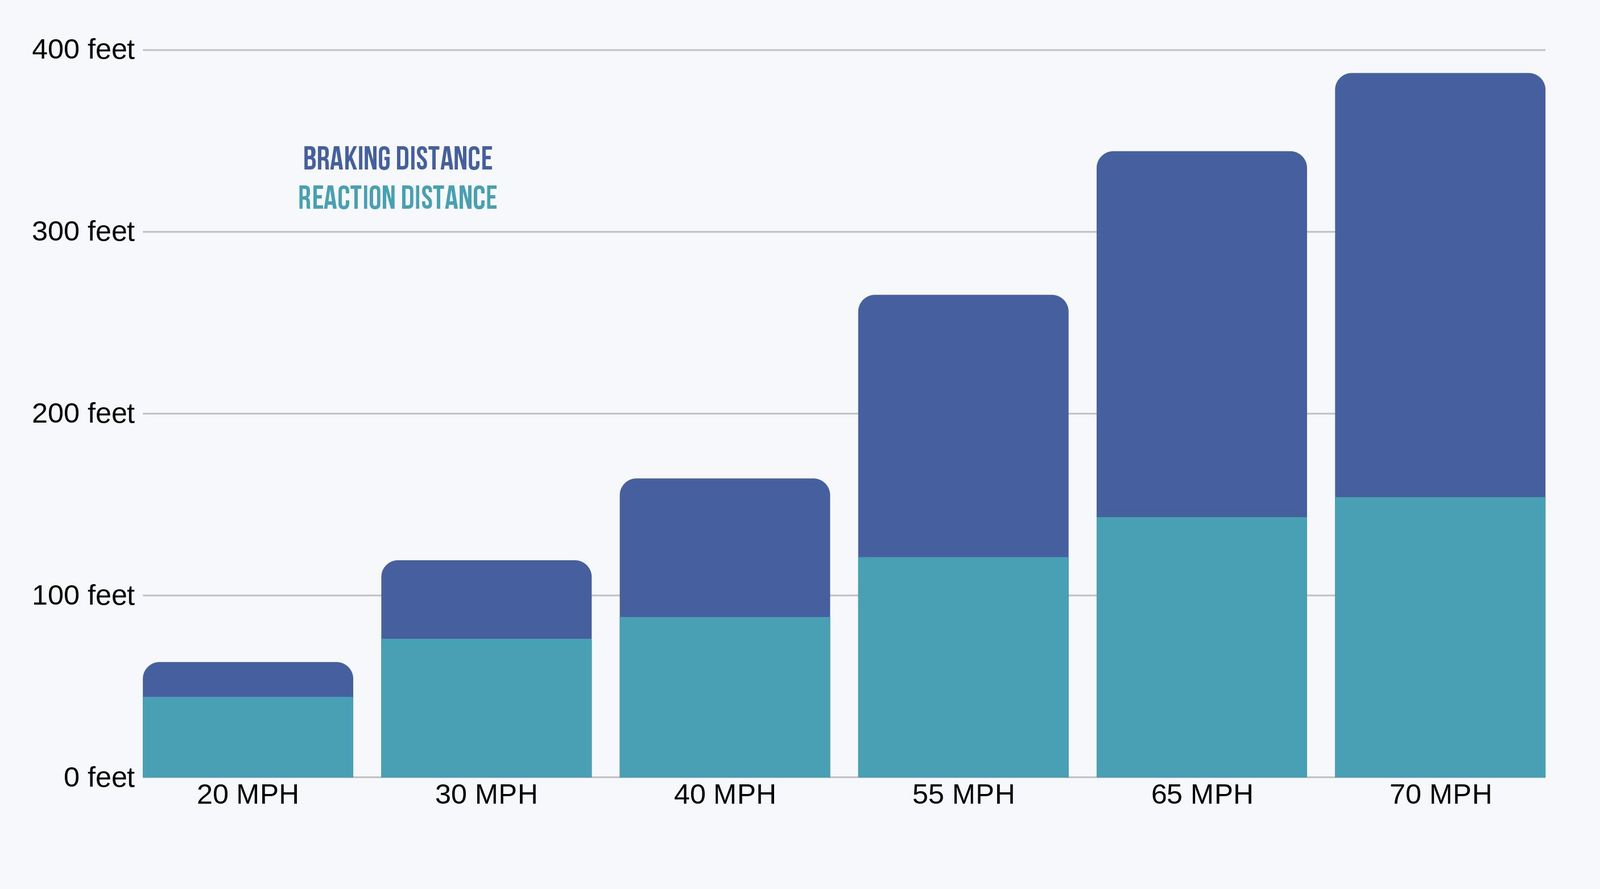 Total stopping distance on dry roads (reaction distance plus braking distance)